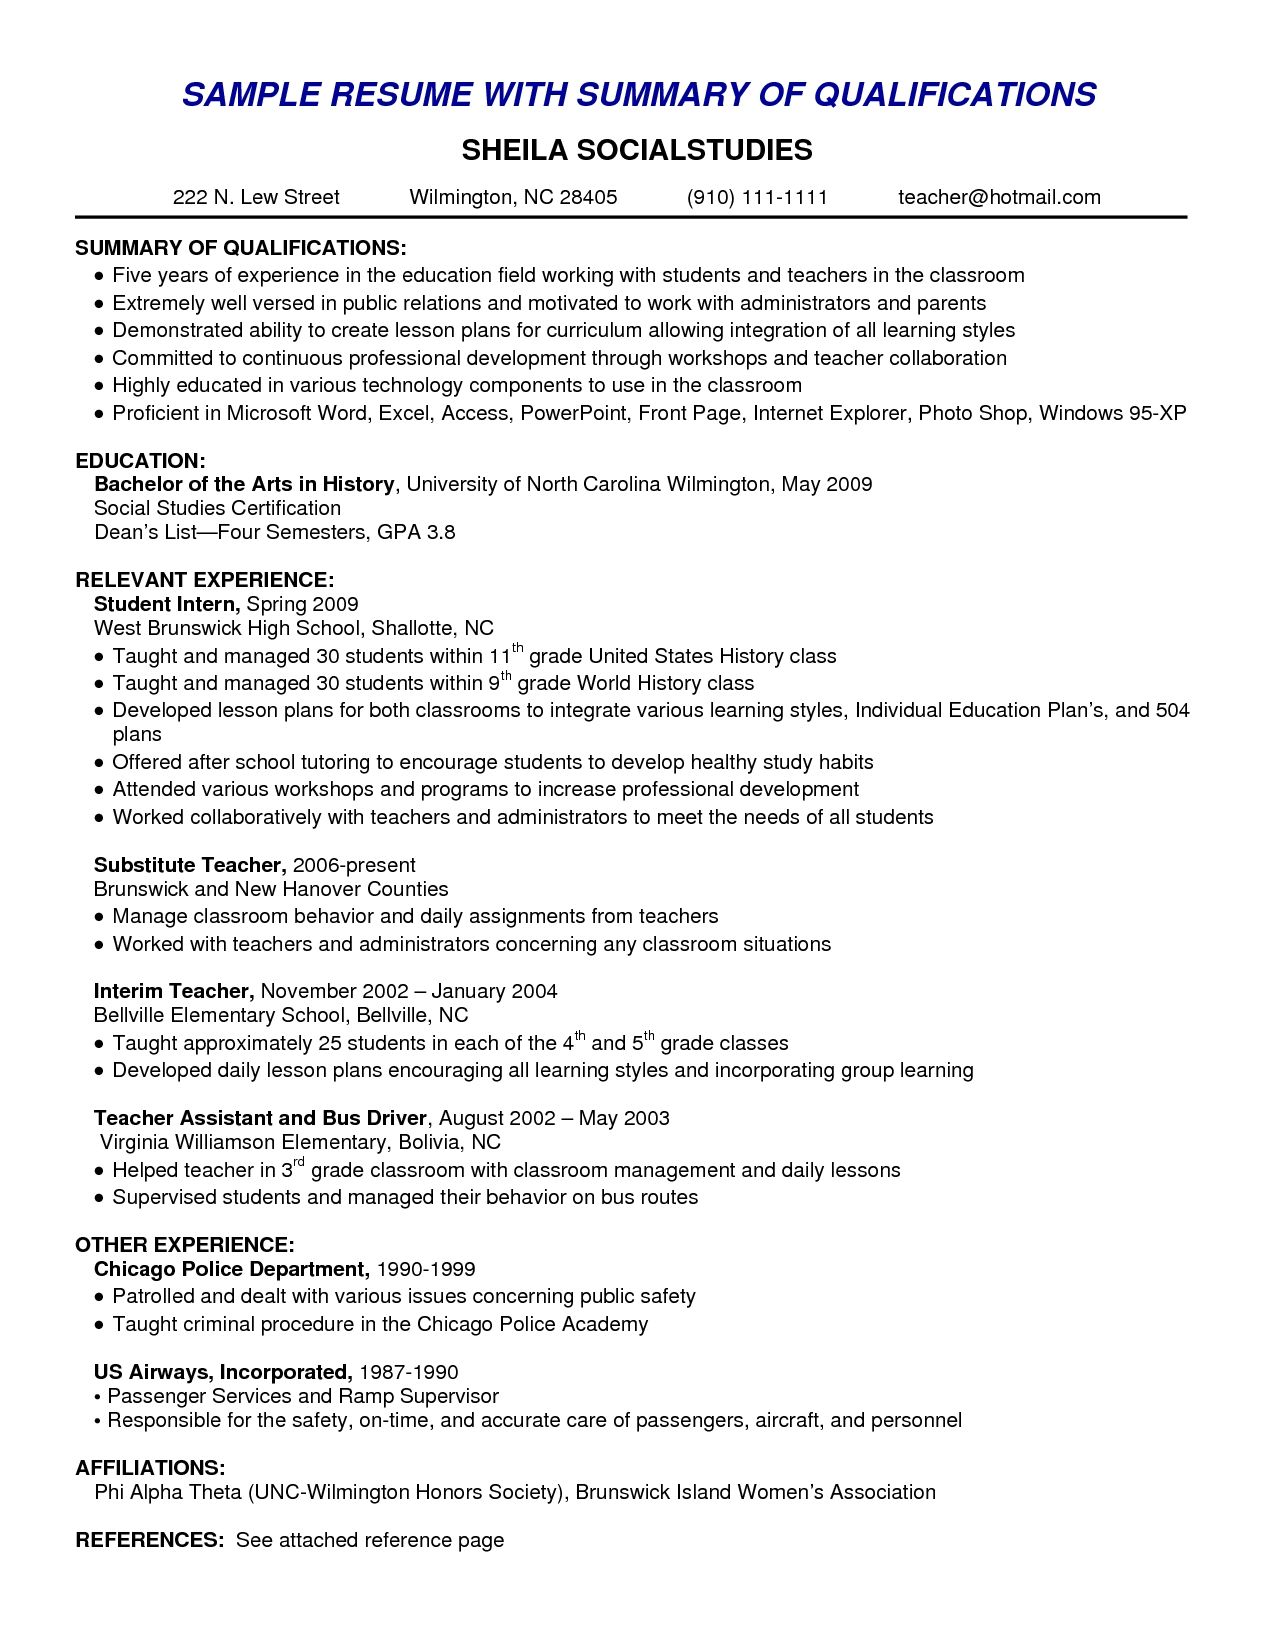 Examples Of Abilities For Resume Resume Skills Summary Examples Example Of Skills Summary